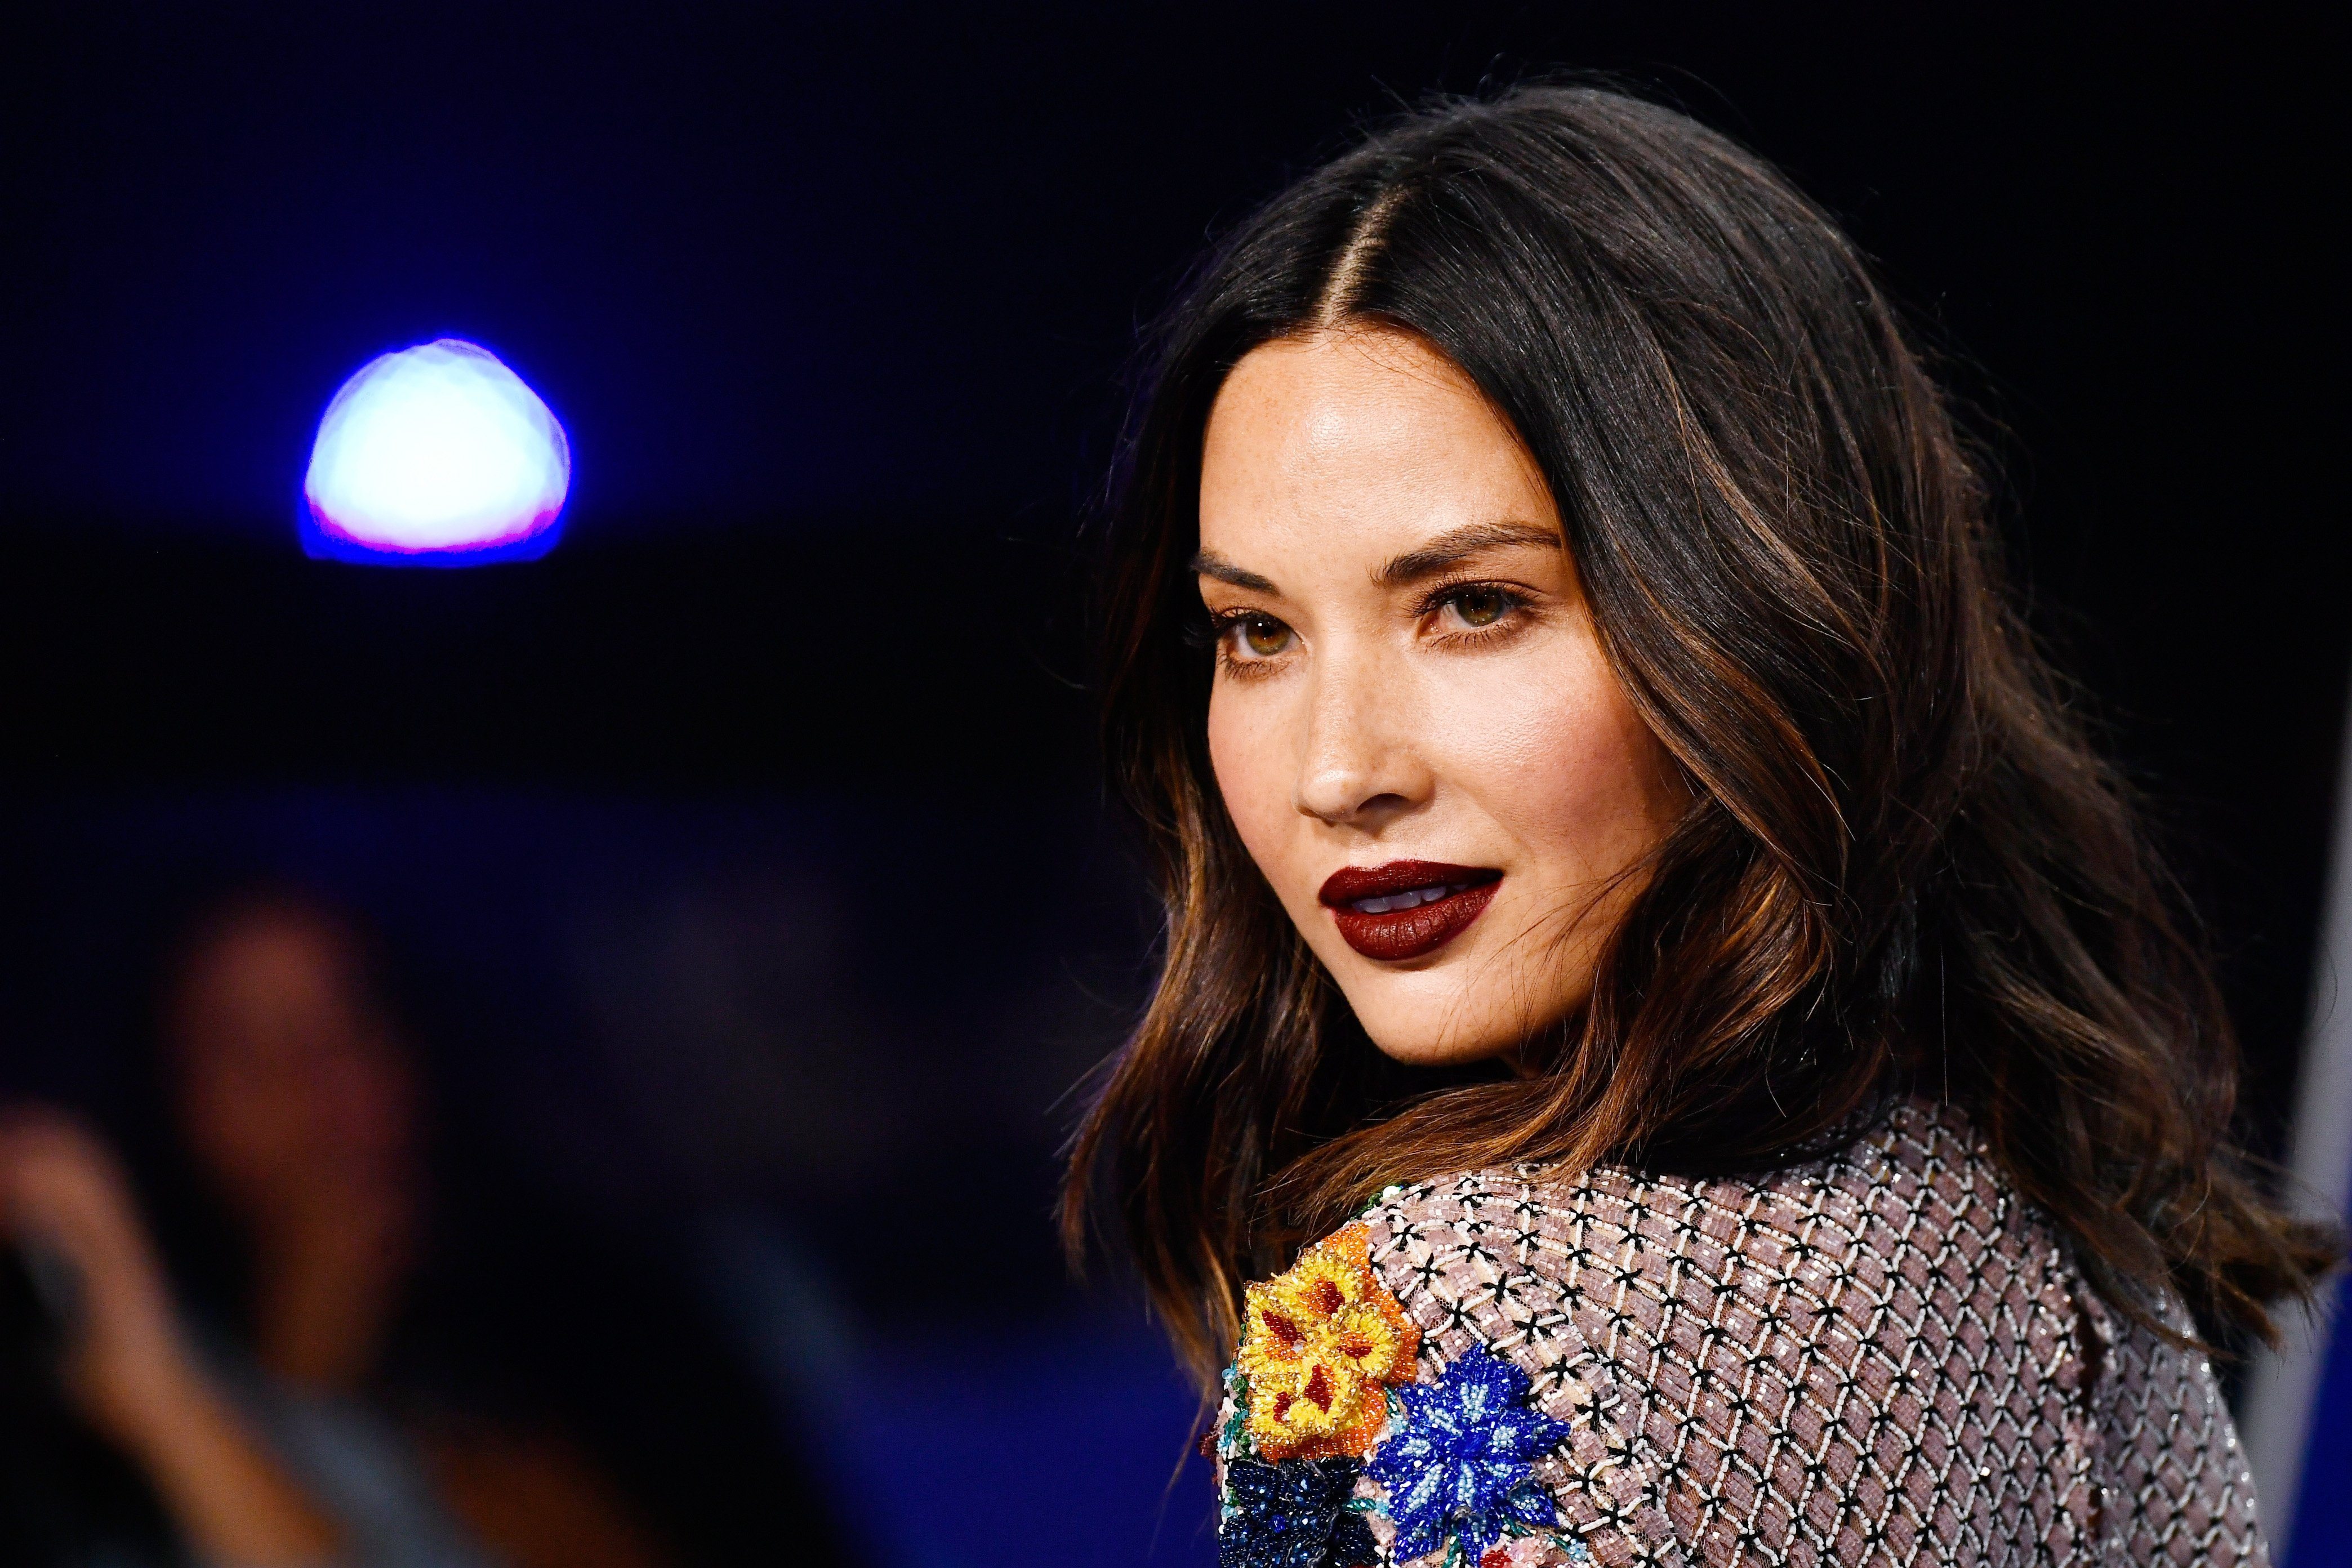 Olivia Munn broke out in a rash after becoming part of #MeToo